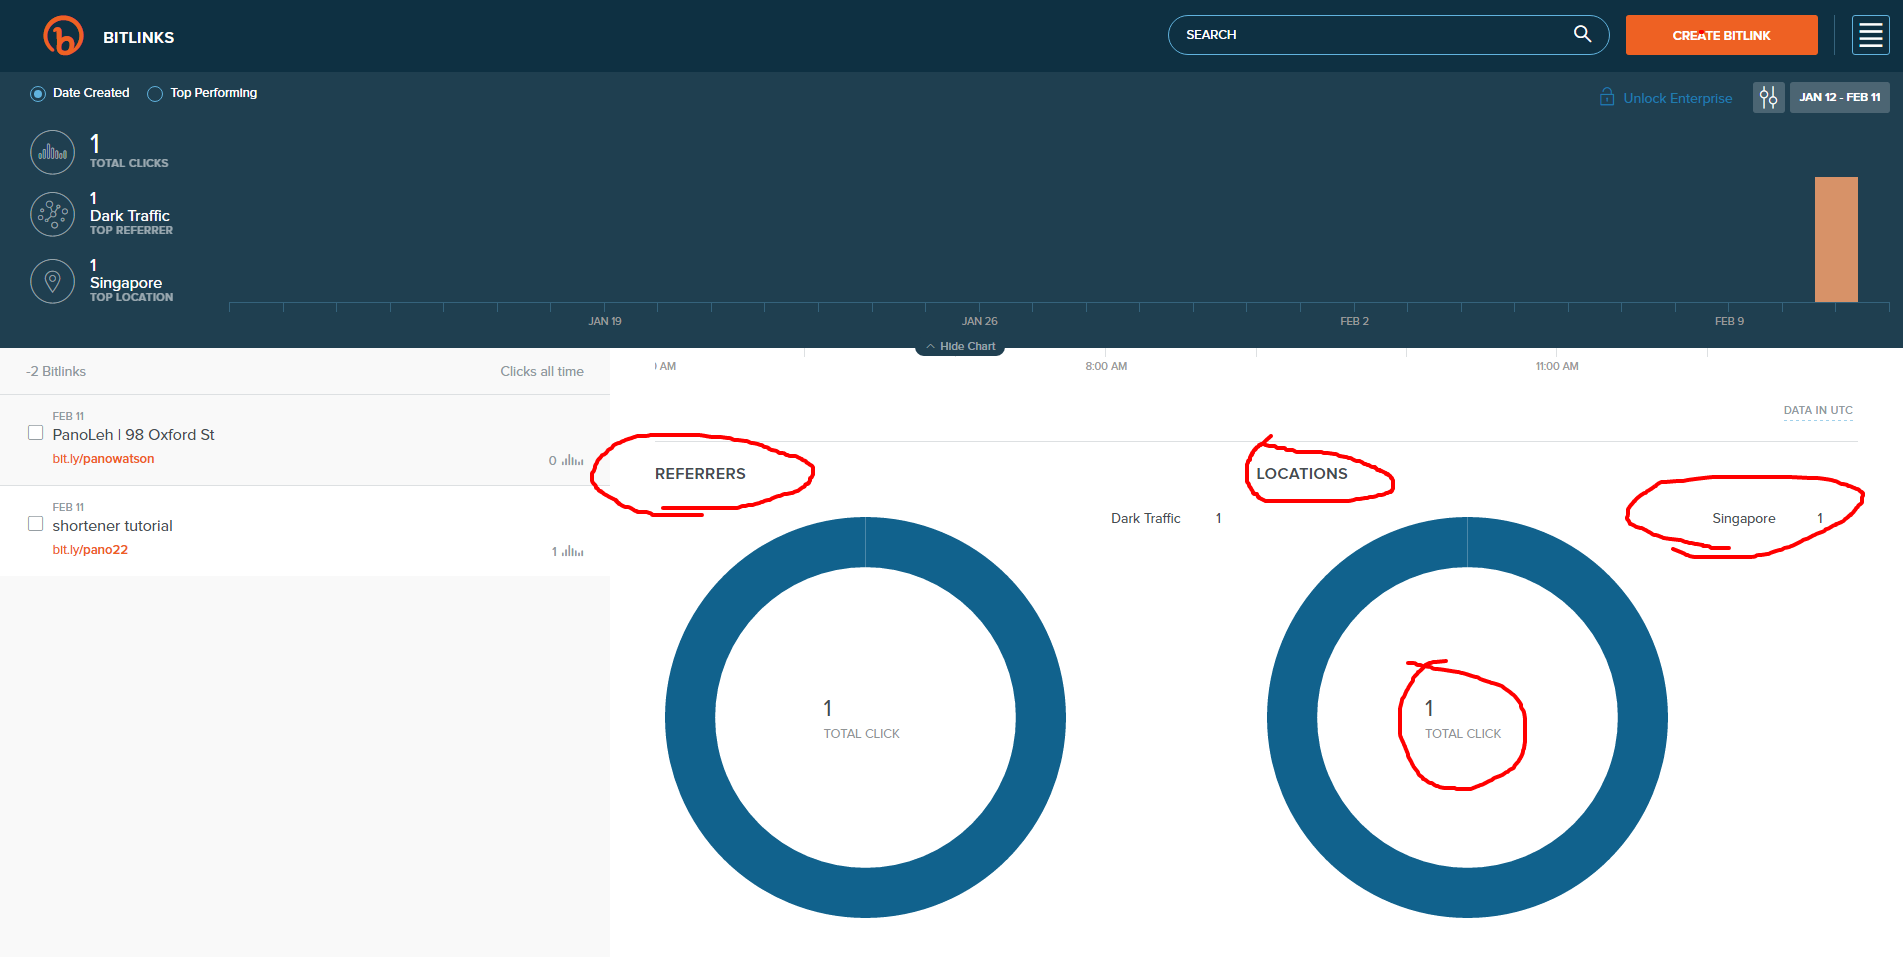 PanoLeh tracking data and metrics in BitLy